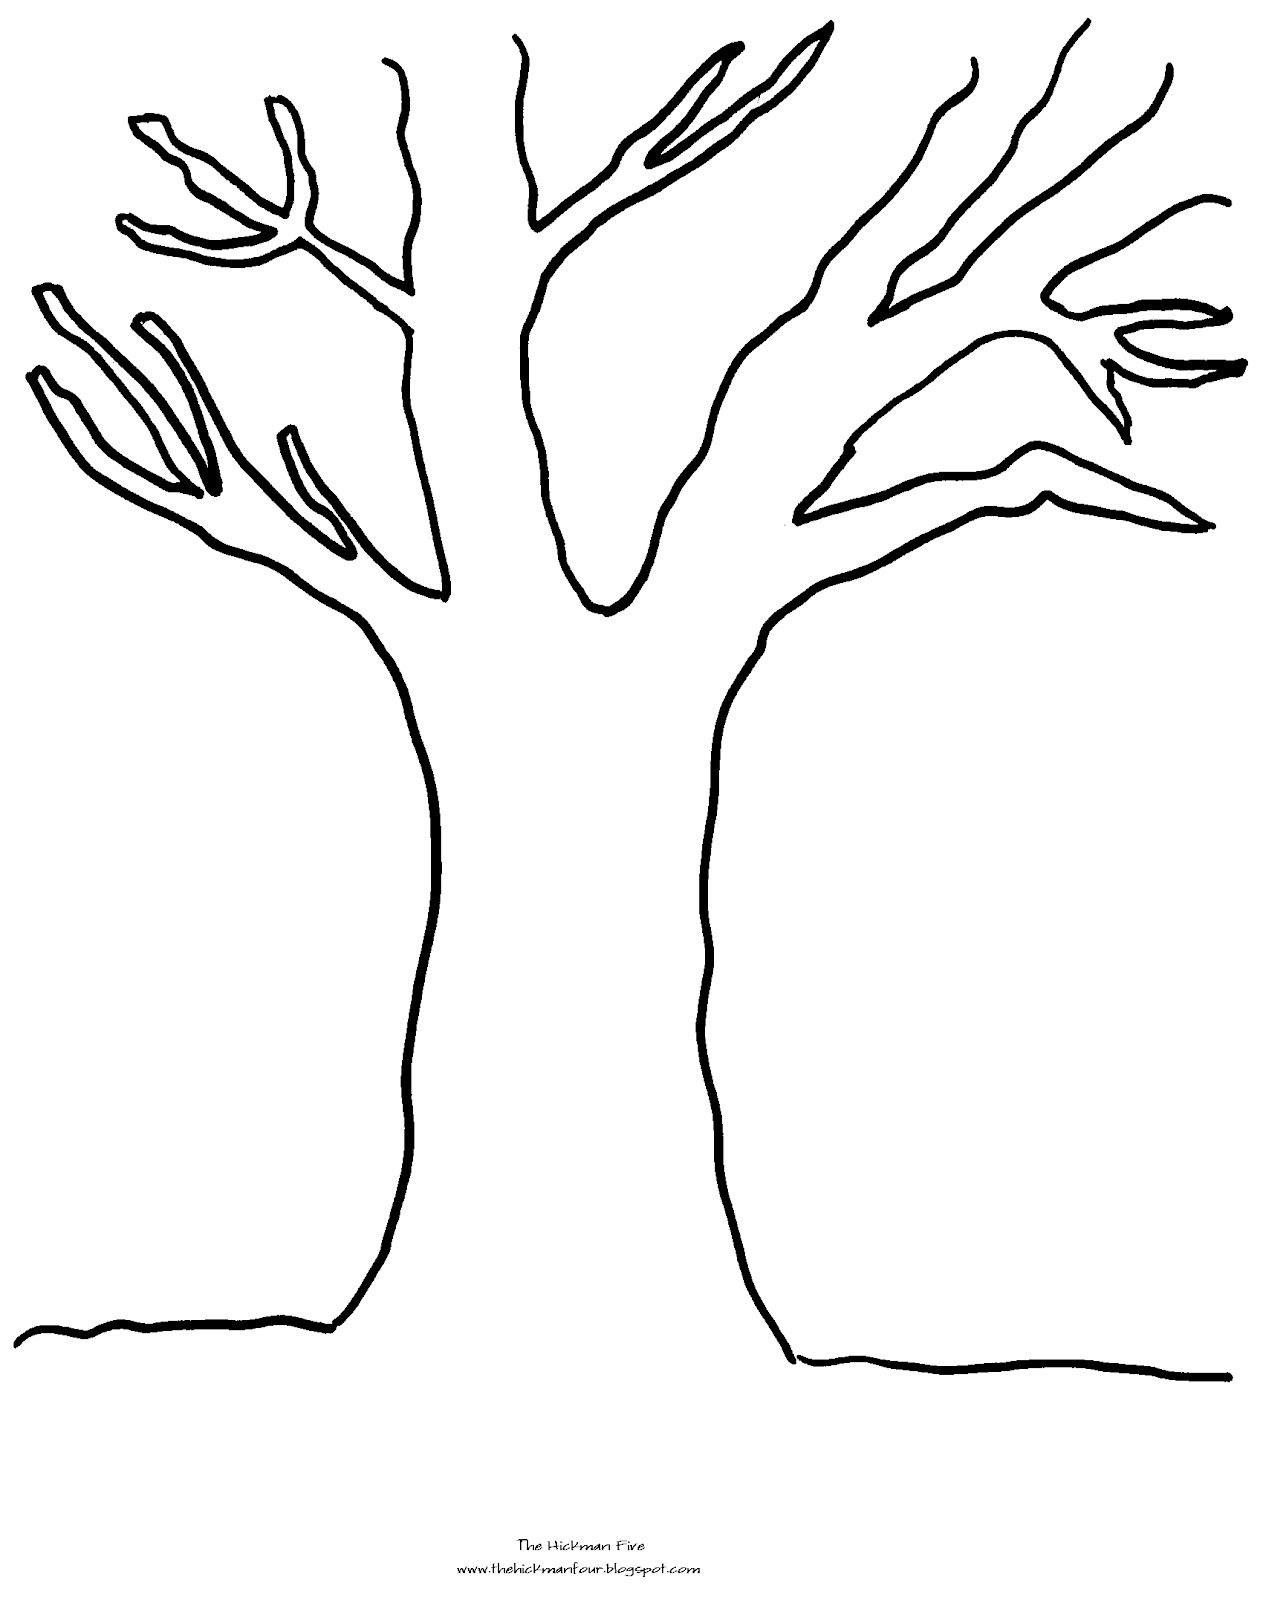 Tree Coloring Pages With No Leaves Only Coloring Pages Tree Coloring Page Fall Coloring Pages Fall Leaves Coloring Pages